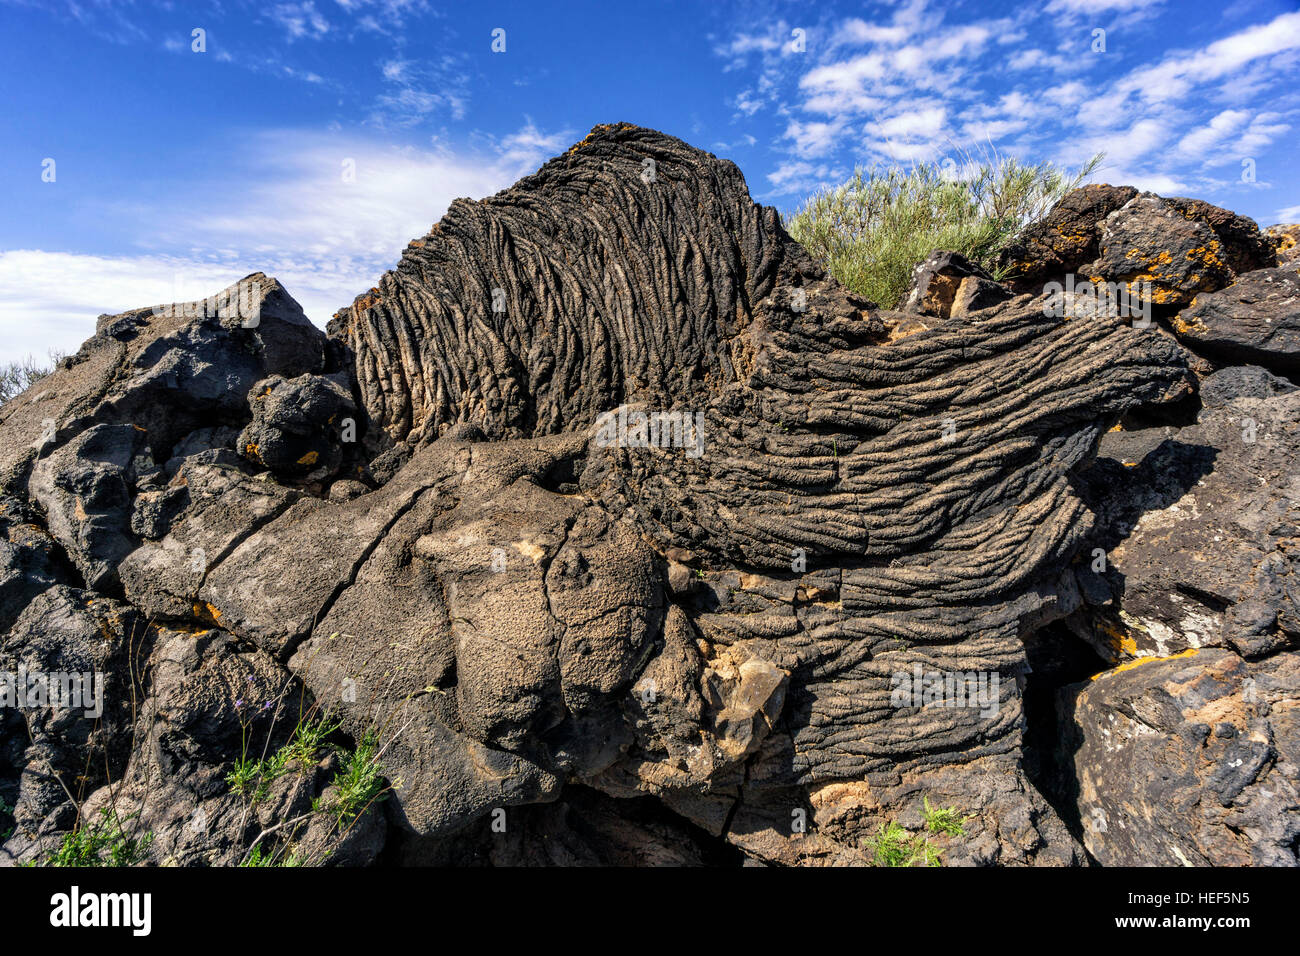 Ropy Lava formation in the natural monument ,Monumento natural del tubo volcanico de Todoque,  Las Manchas, La Palma - Stock Image